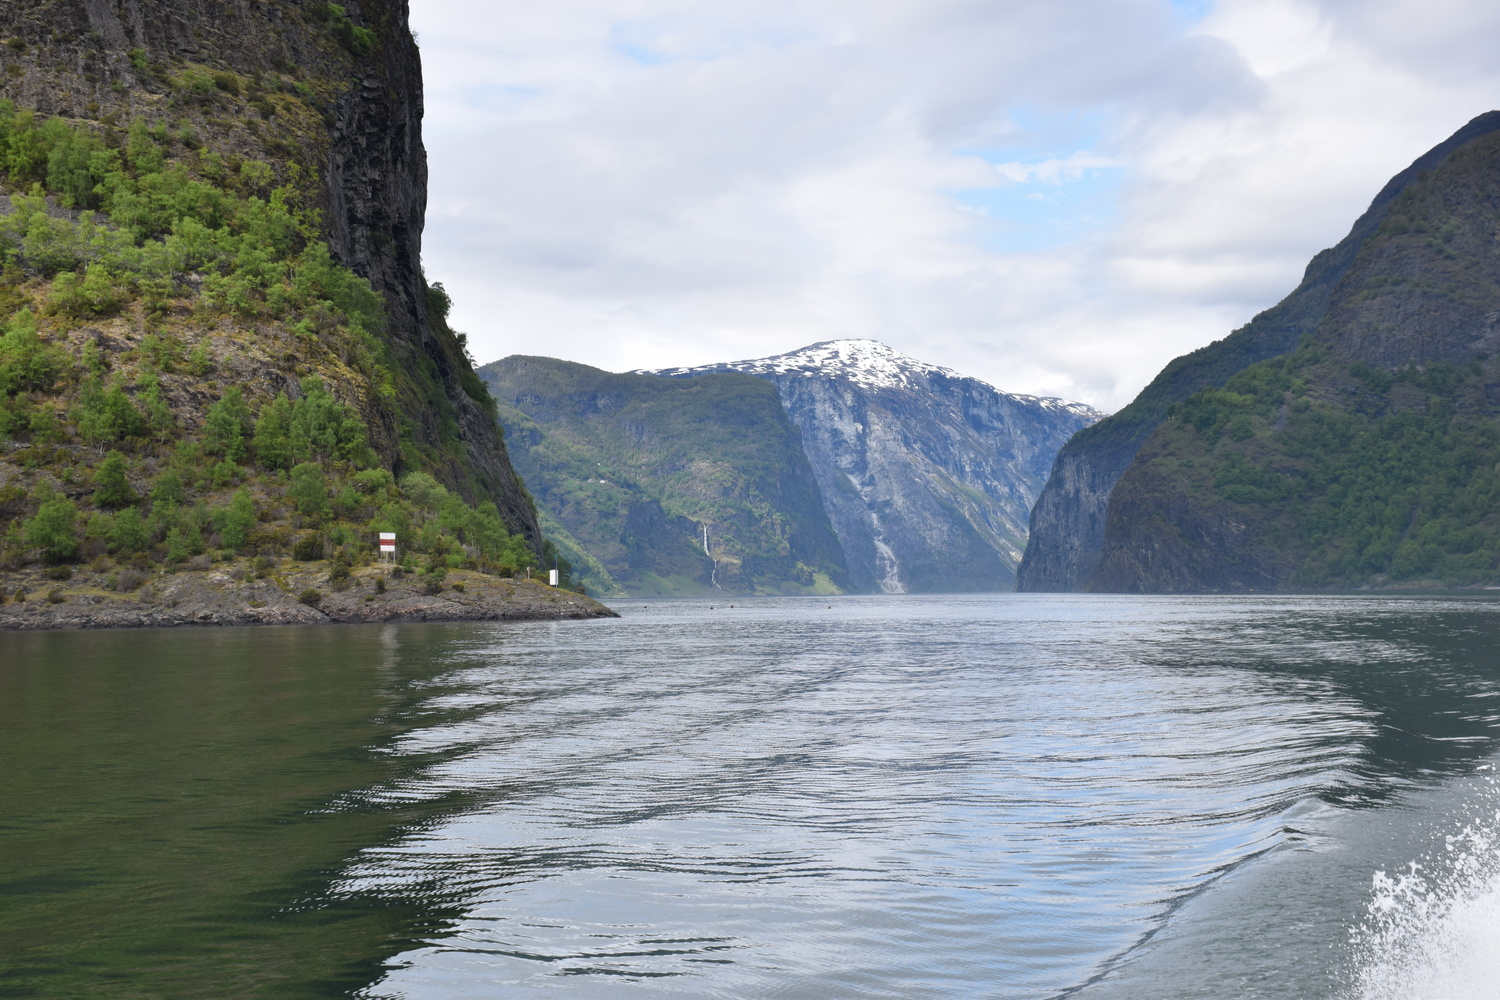 The Sognefjord in a Nutshell tour takes you through Norway's longest and deepest fjord, the Sognefjord. Check out this post on why this tour is a must and how to book it!